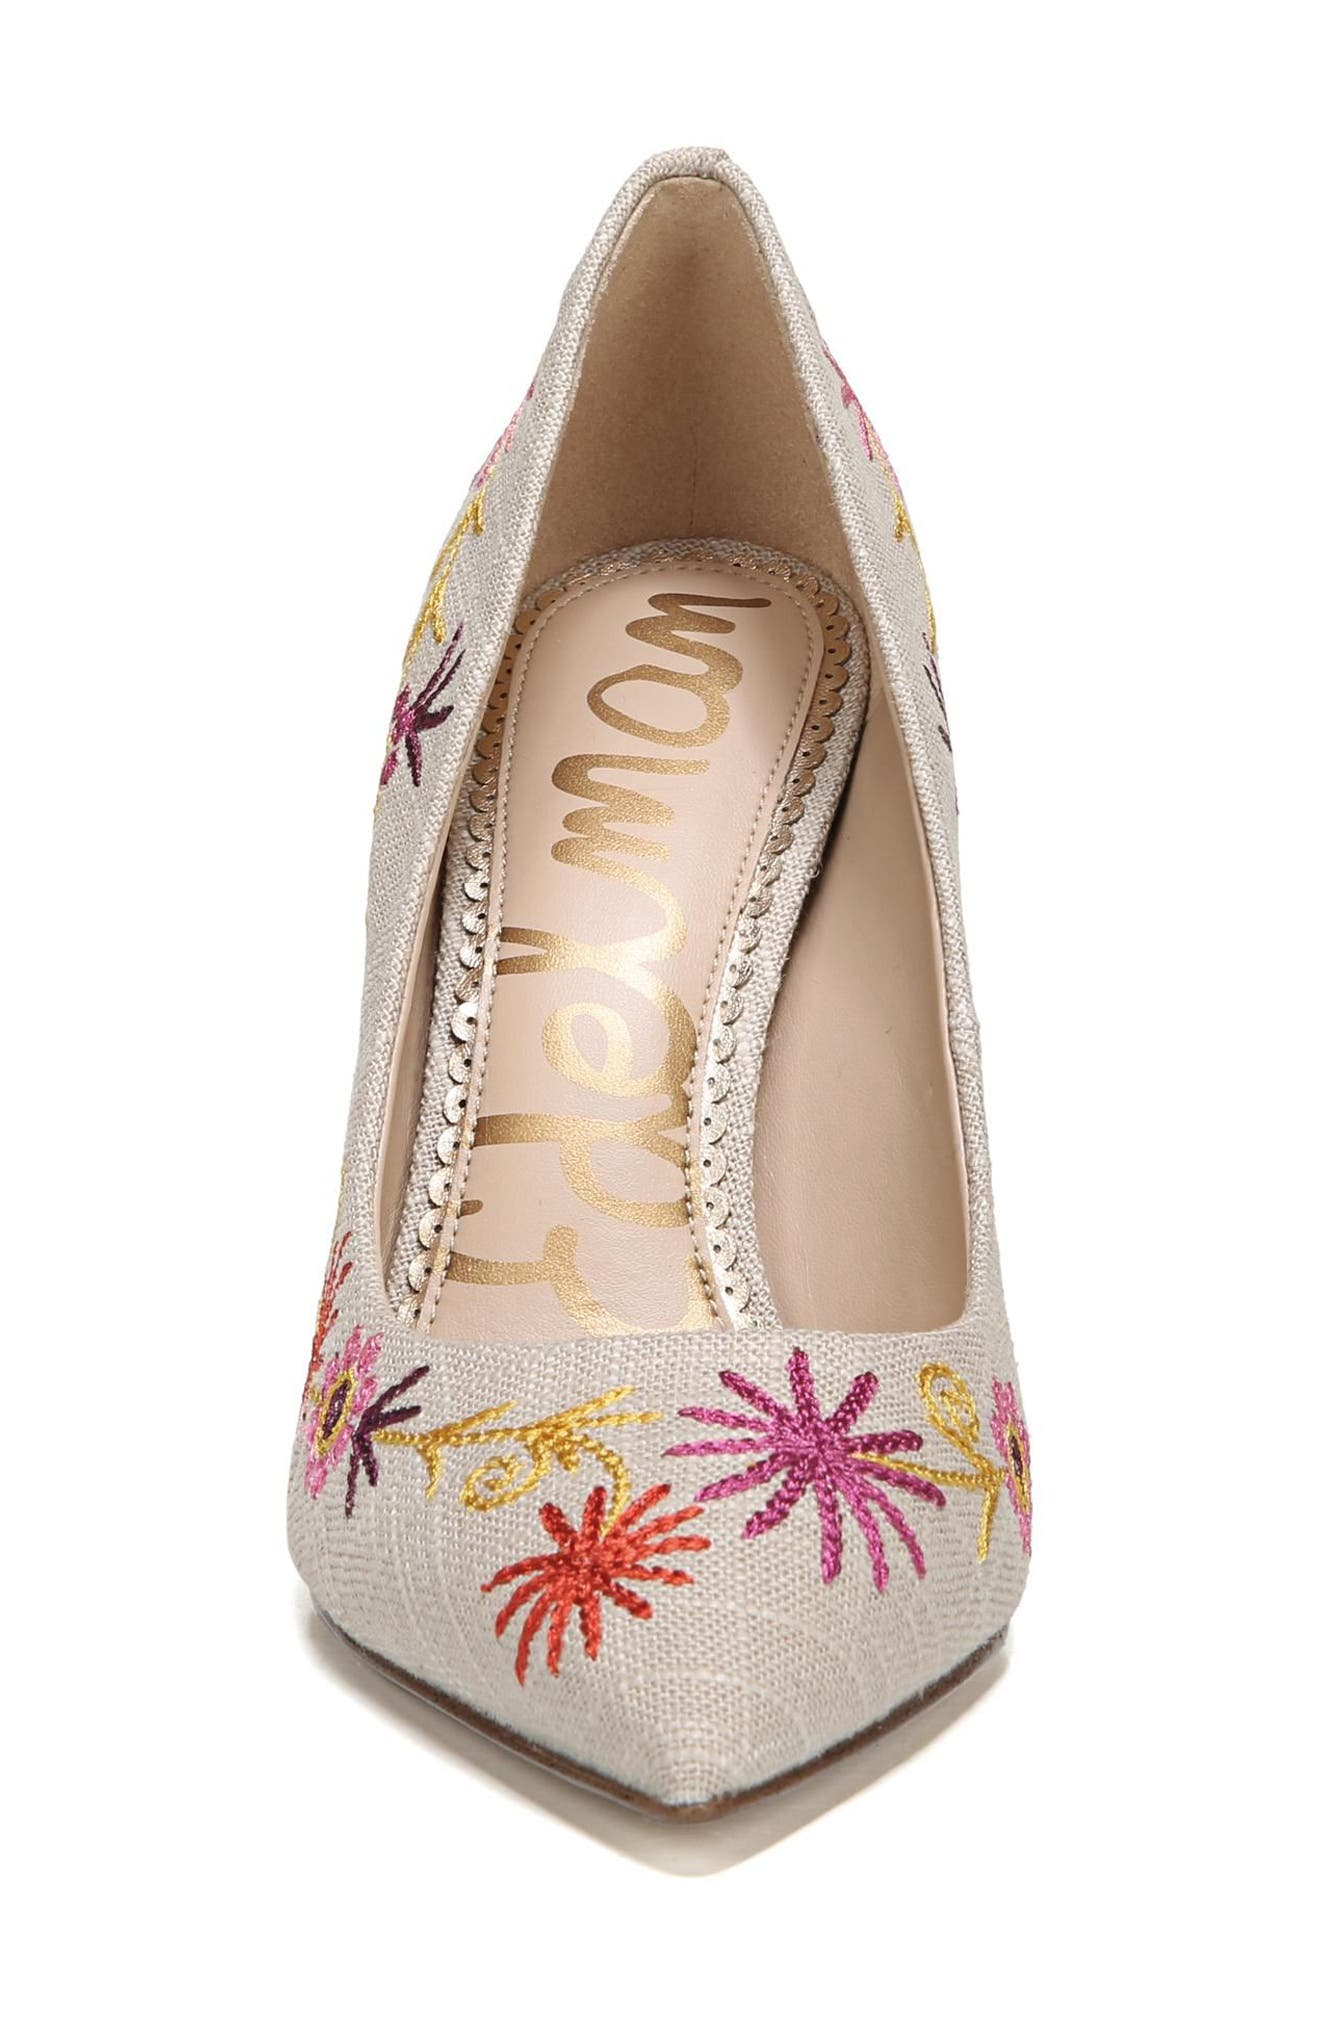 Hazel Pointy Toe Pump,                             Alternate thumbnail 4, color,                             Yellow Embroidery Suede